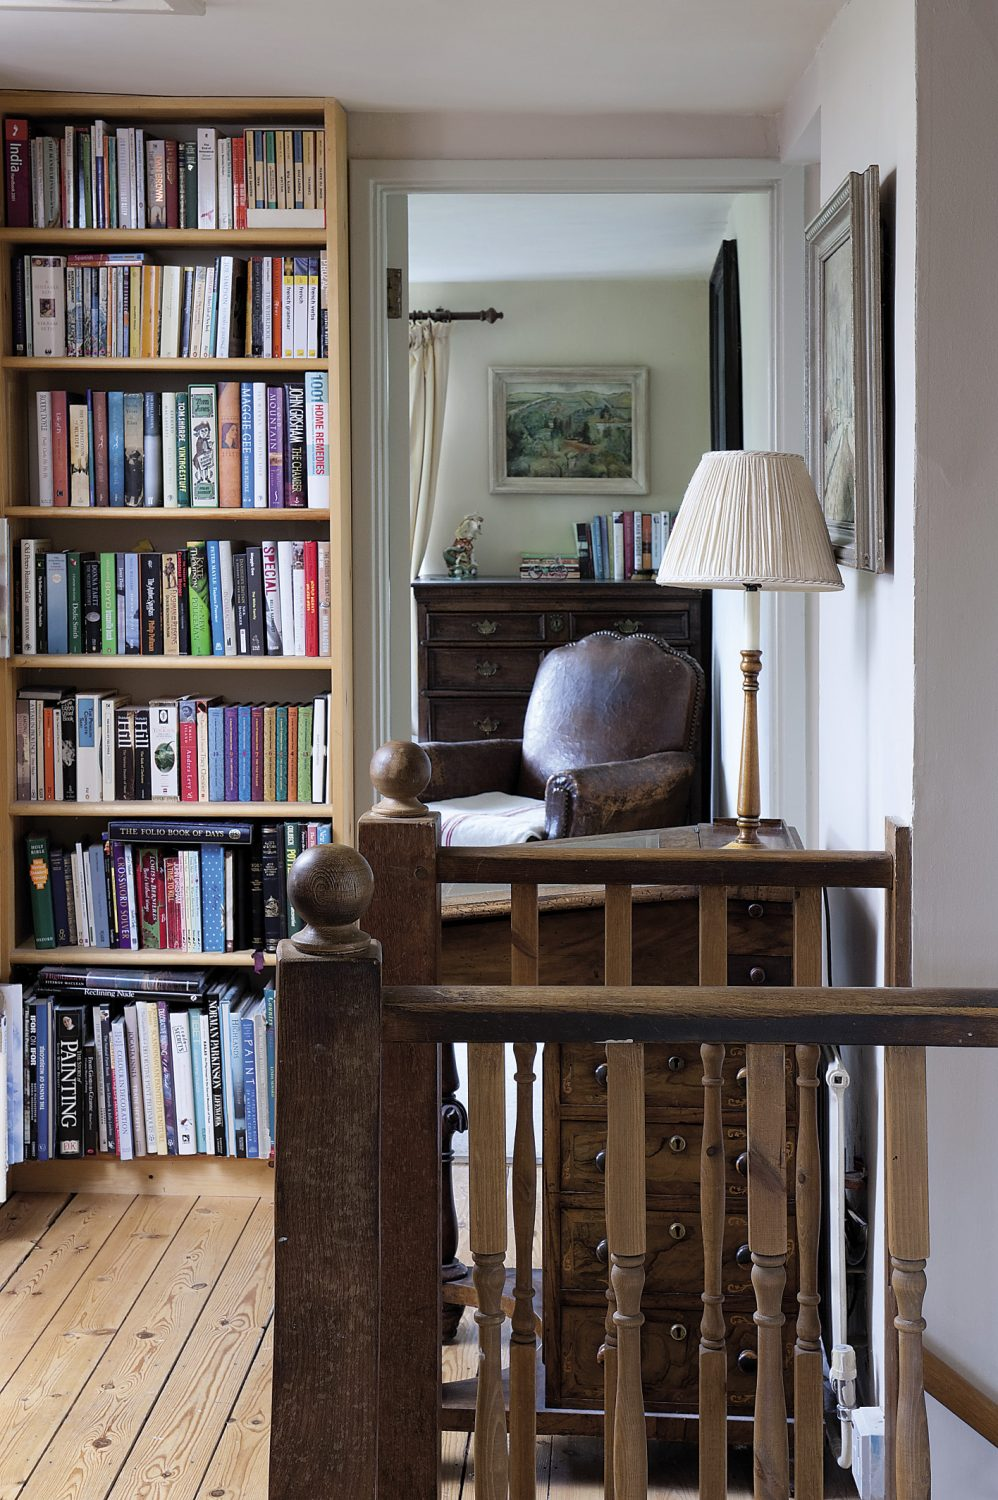 The spacious landing is home to some of Veronica's eclectic collection of books